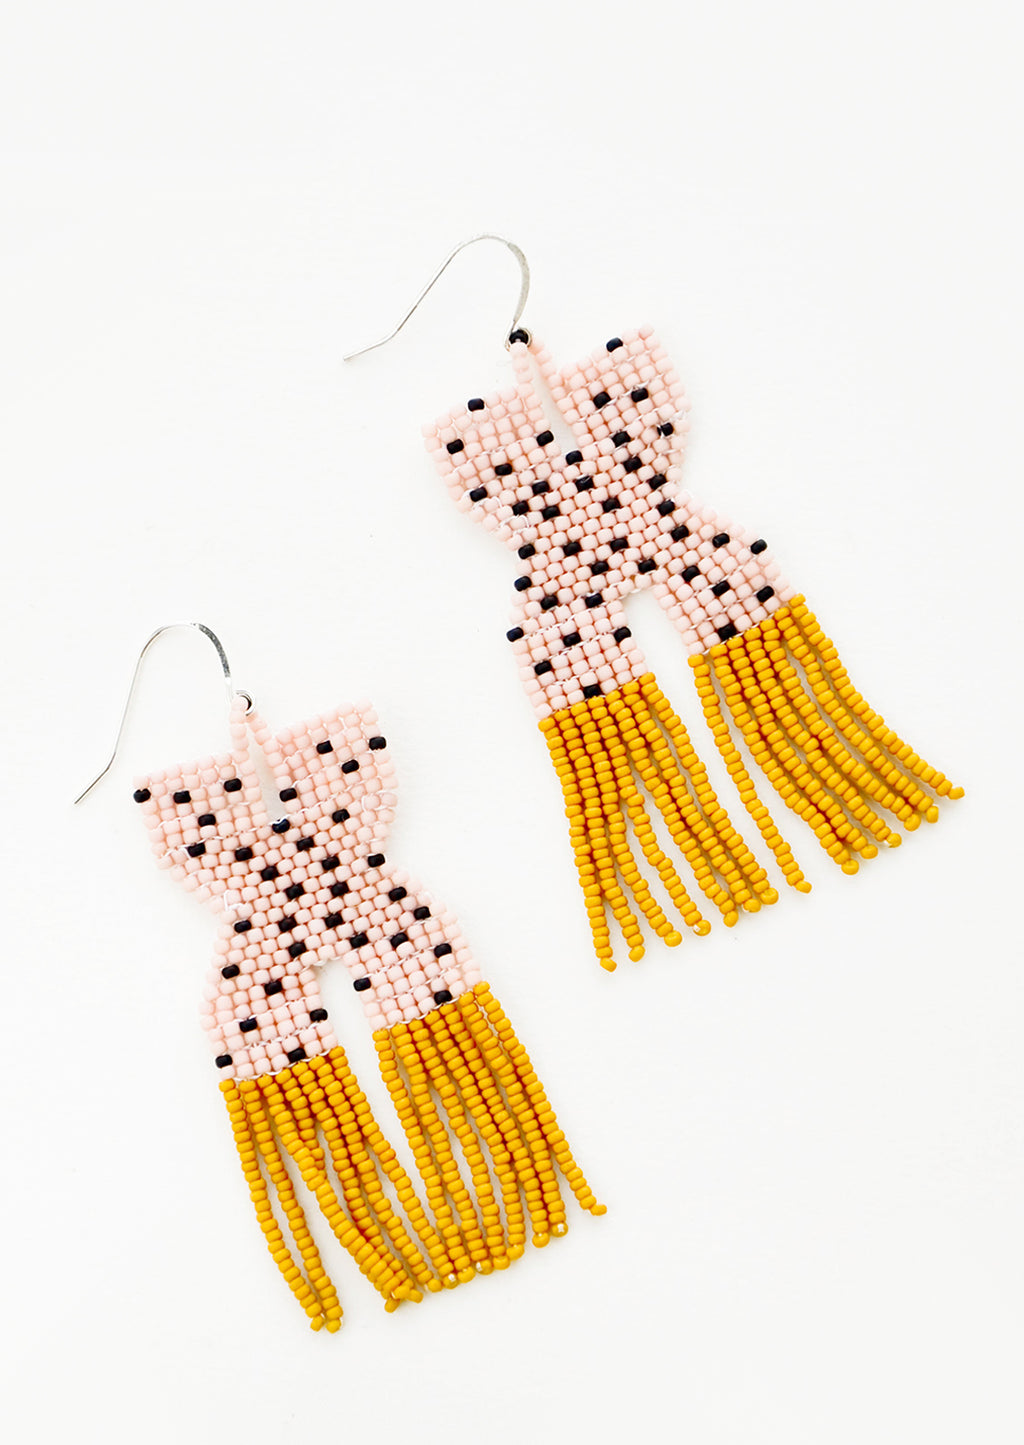 1: Pink x-shaped beaded earrings with black polka dots and mustard yellow fringe.